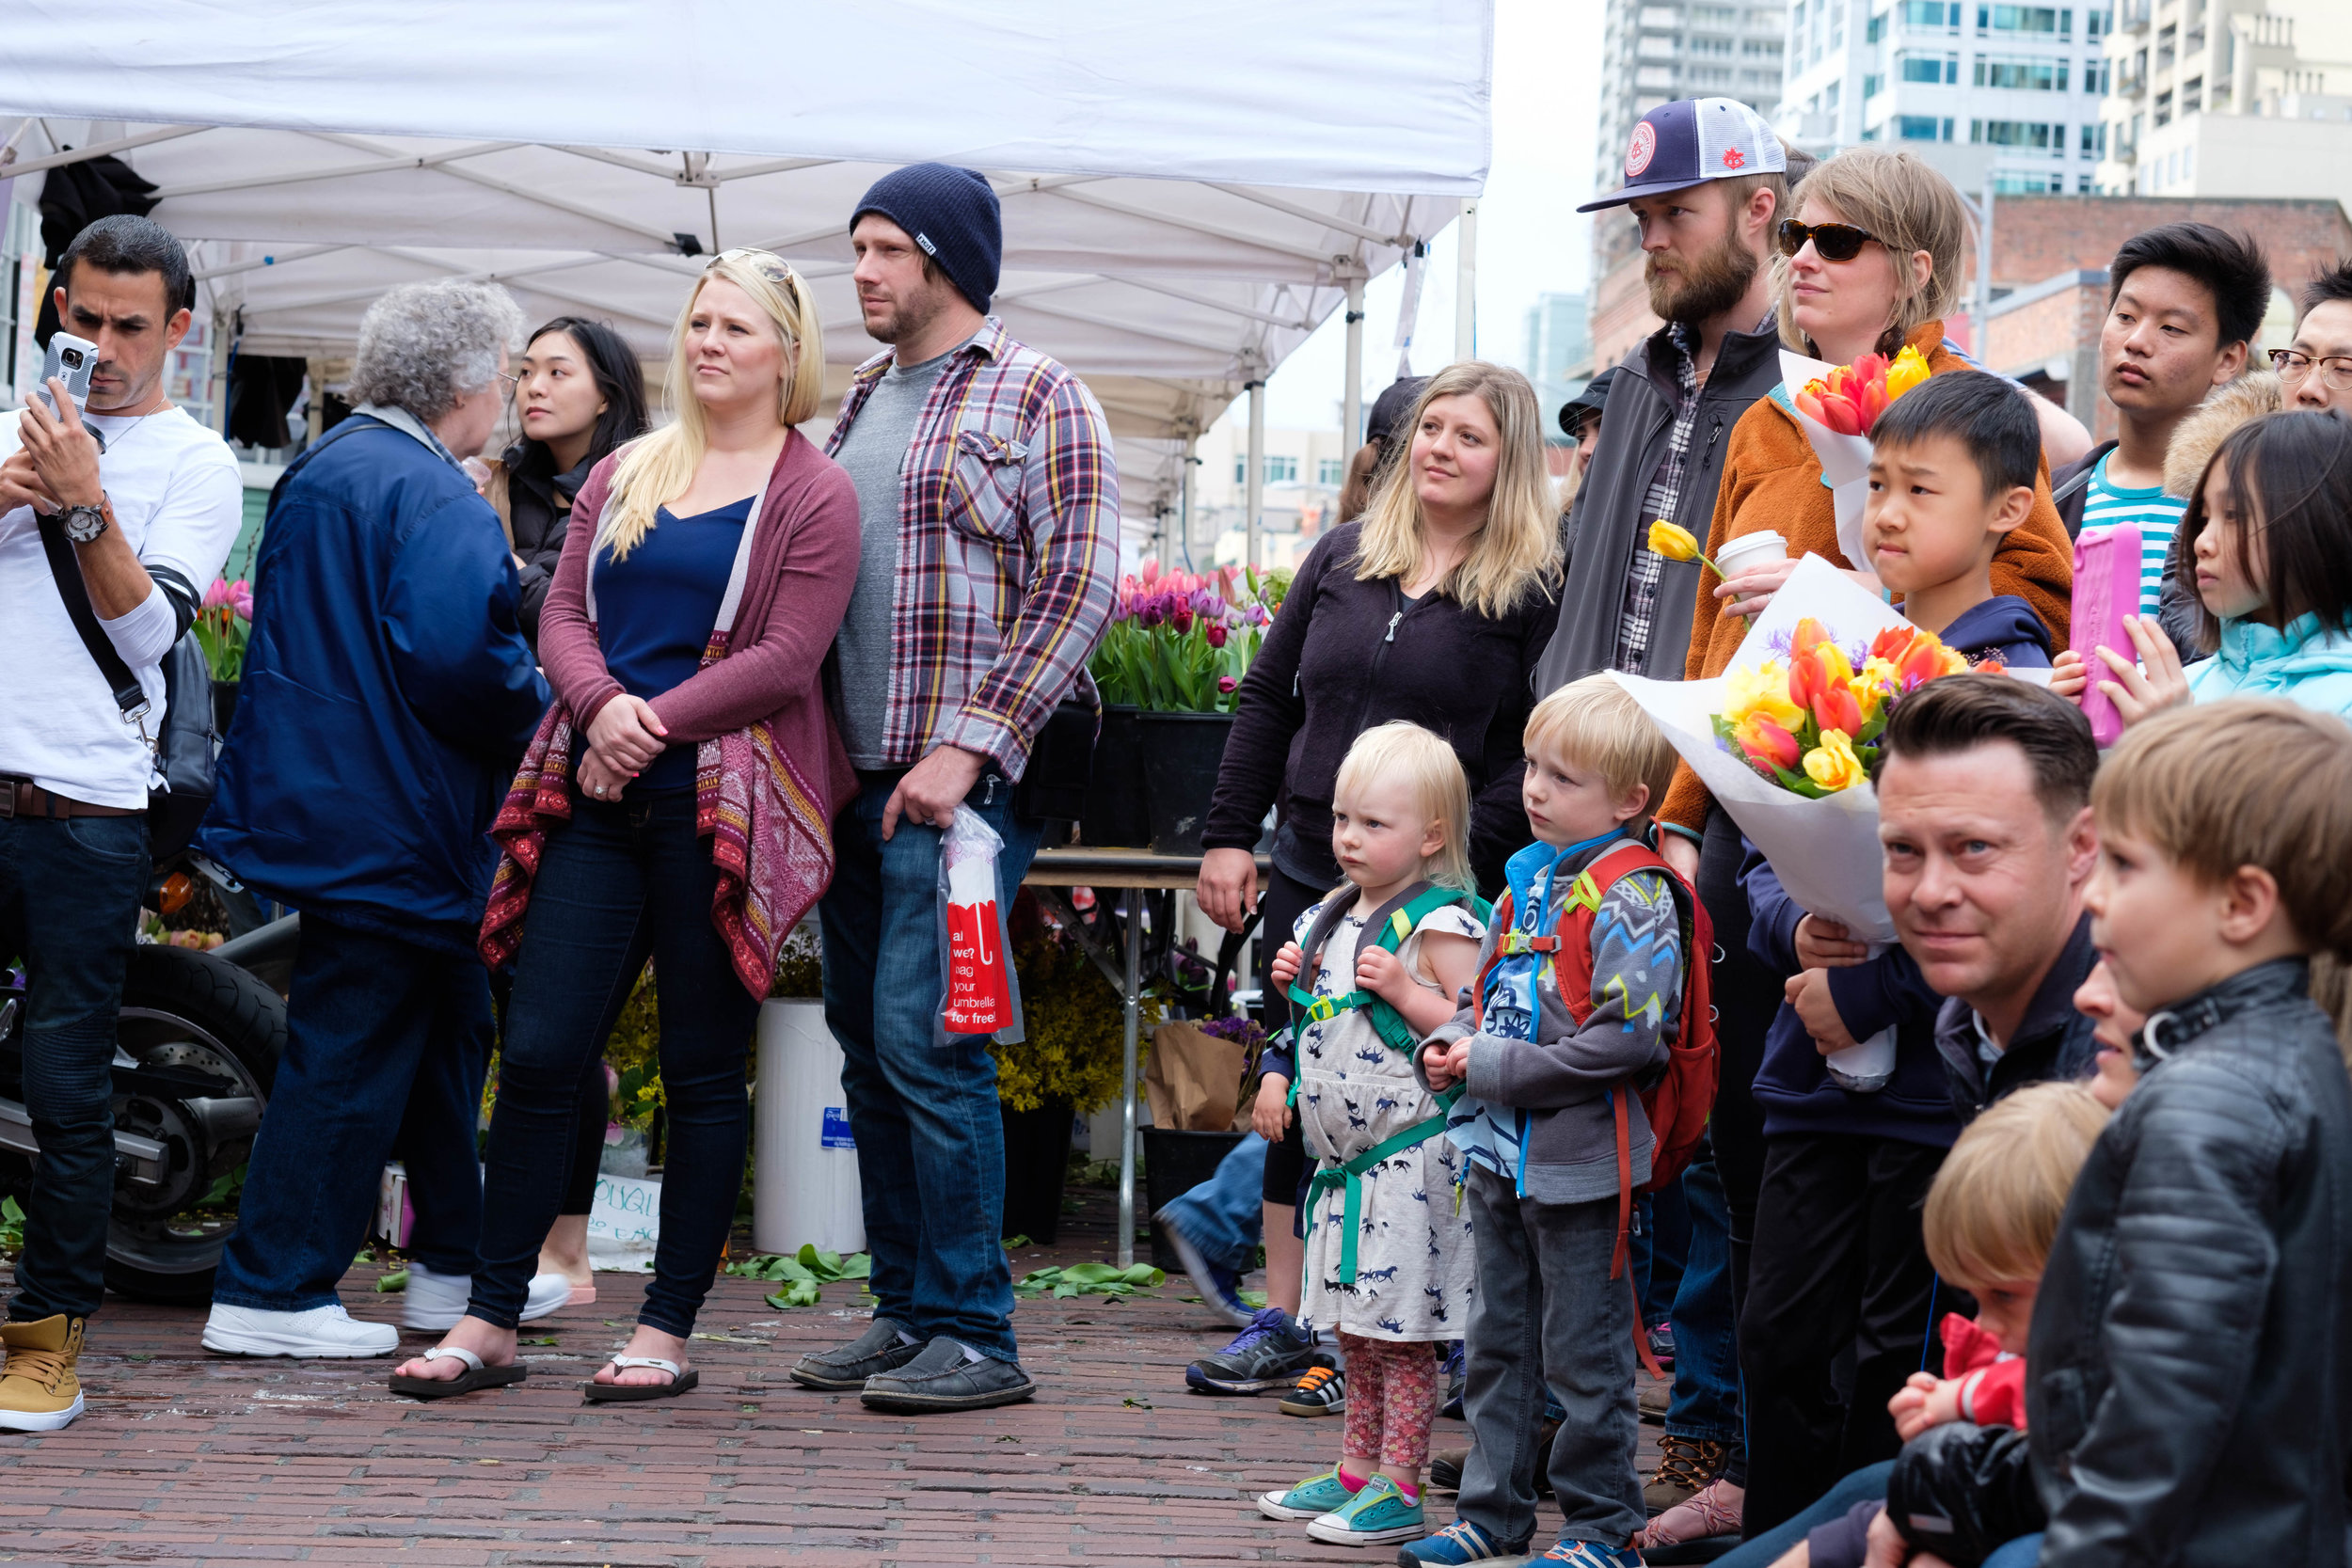 Patrons of the arts, Pike Place Market, Seattle.